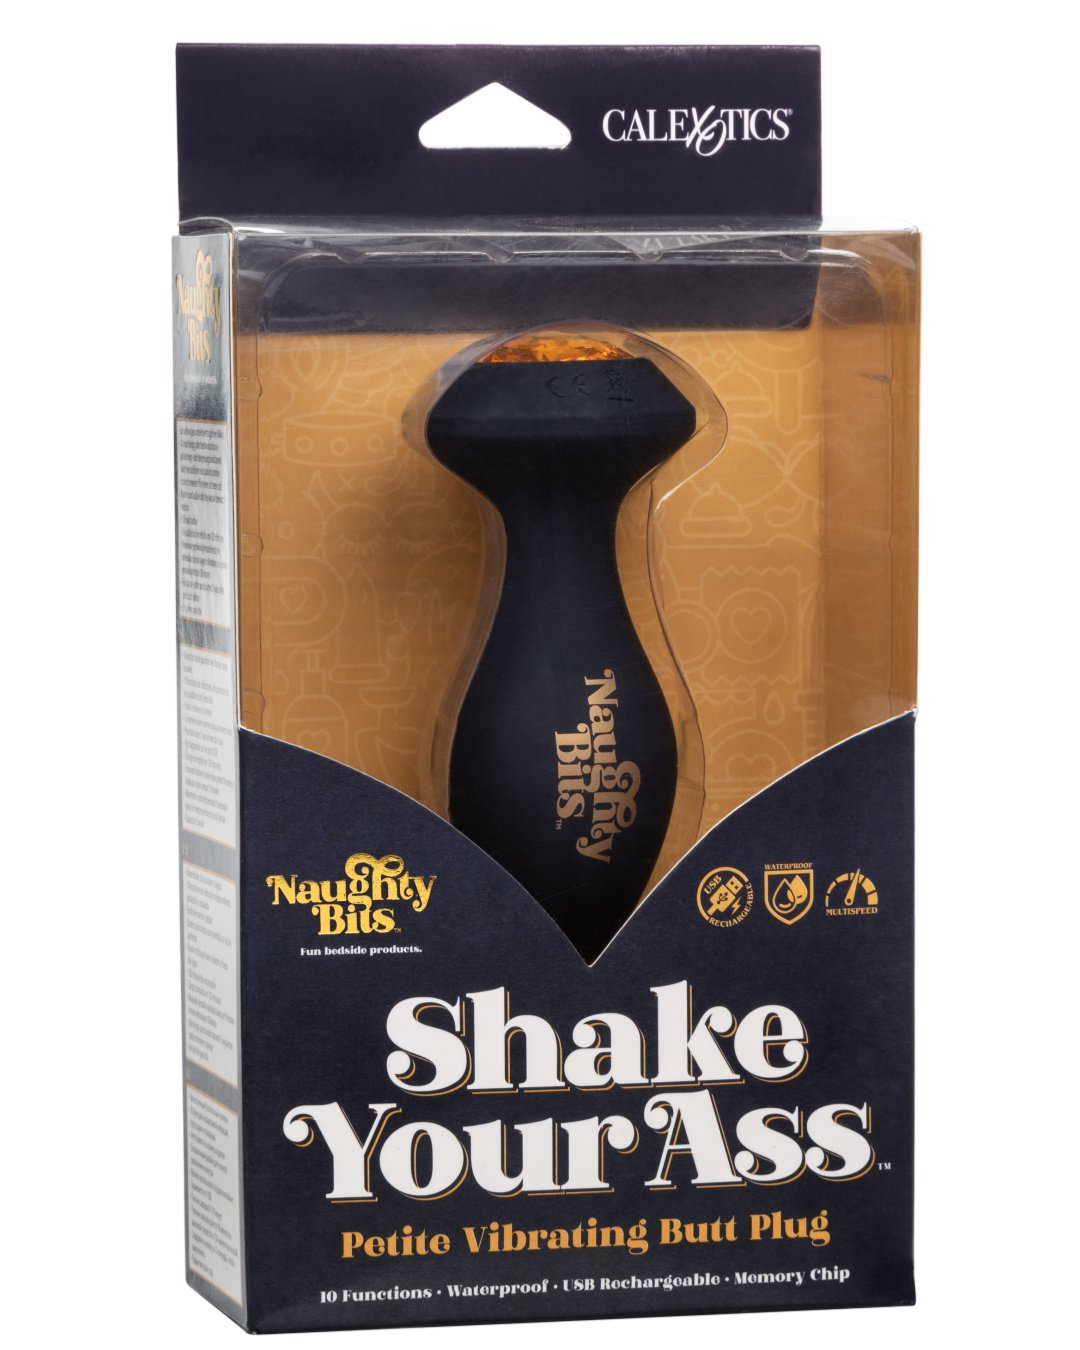 Naughty Bits Shake Your Ass Petite Vibrating Silicone Butt Plug in box